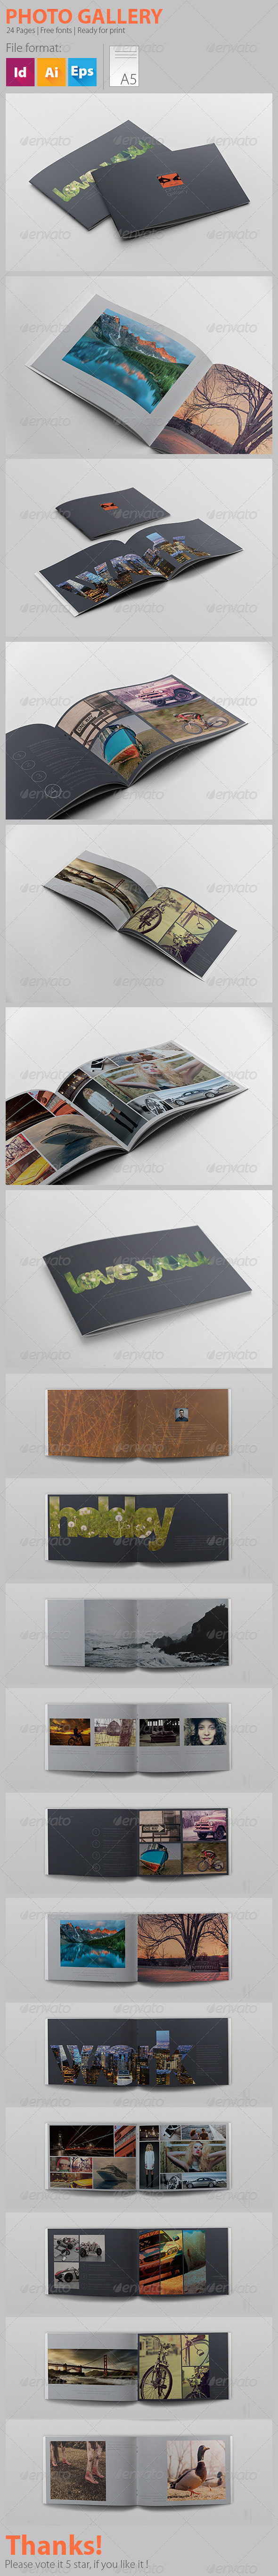 GraphicRiver Photo Gallery 8013089